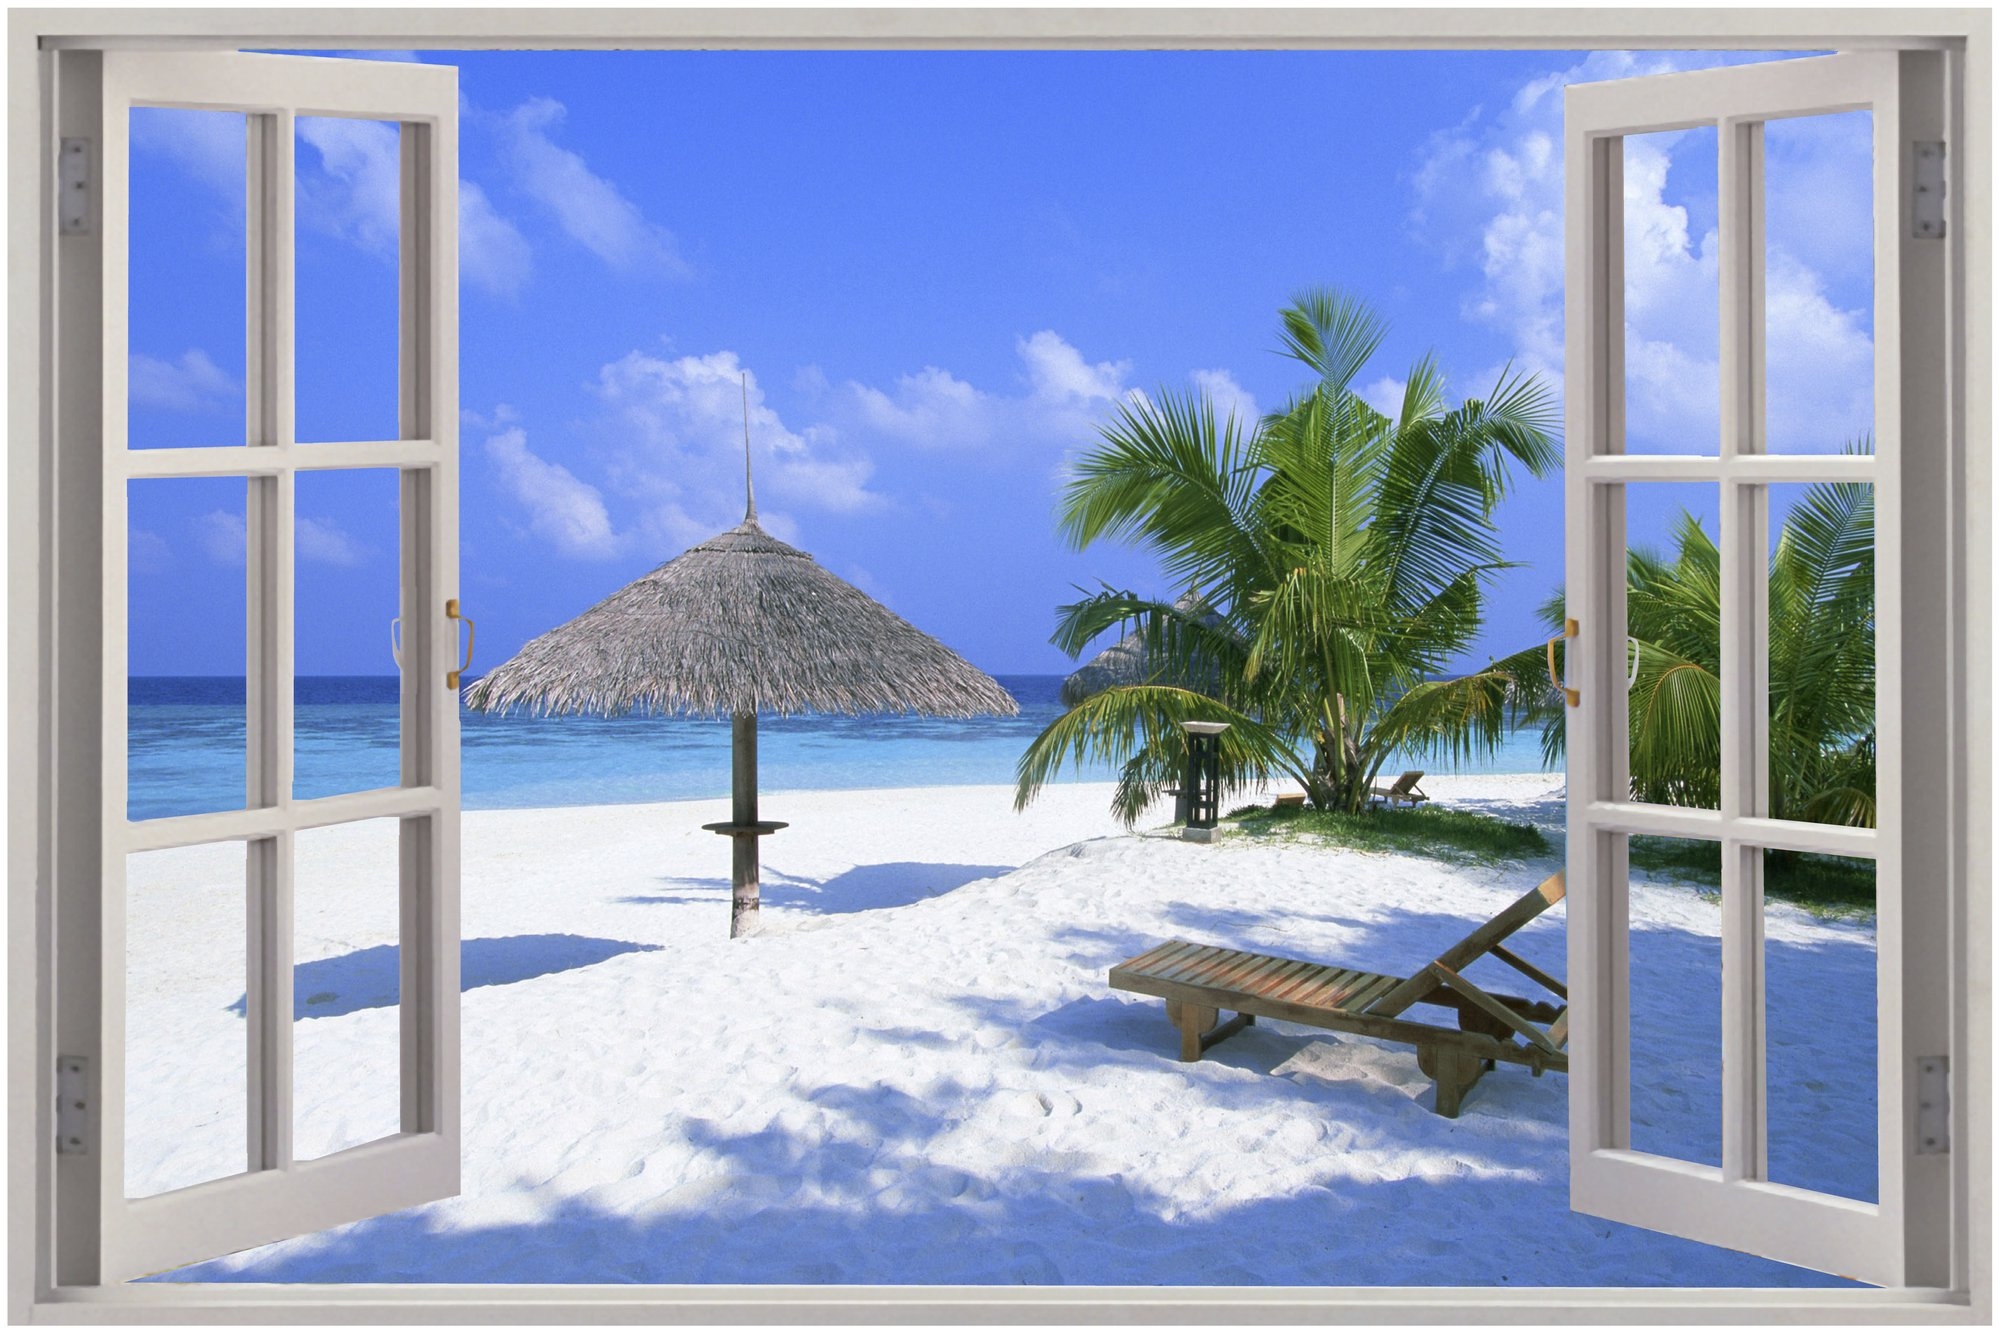 Beach window wallpaper wallpapersafari for Window design wallpaper